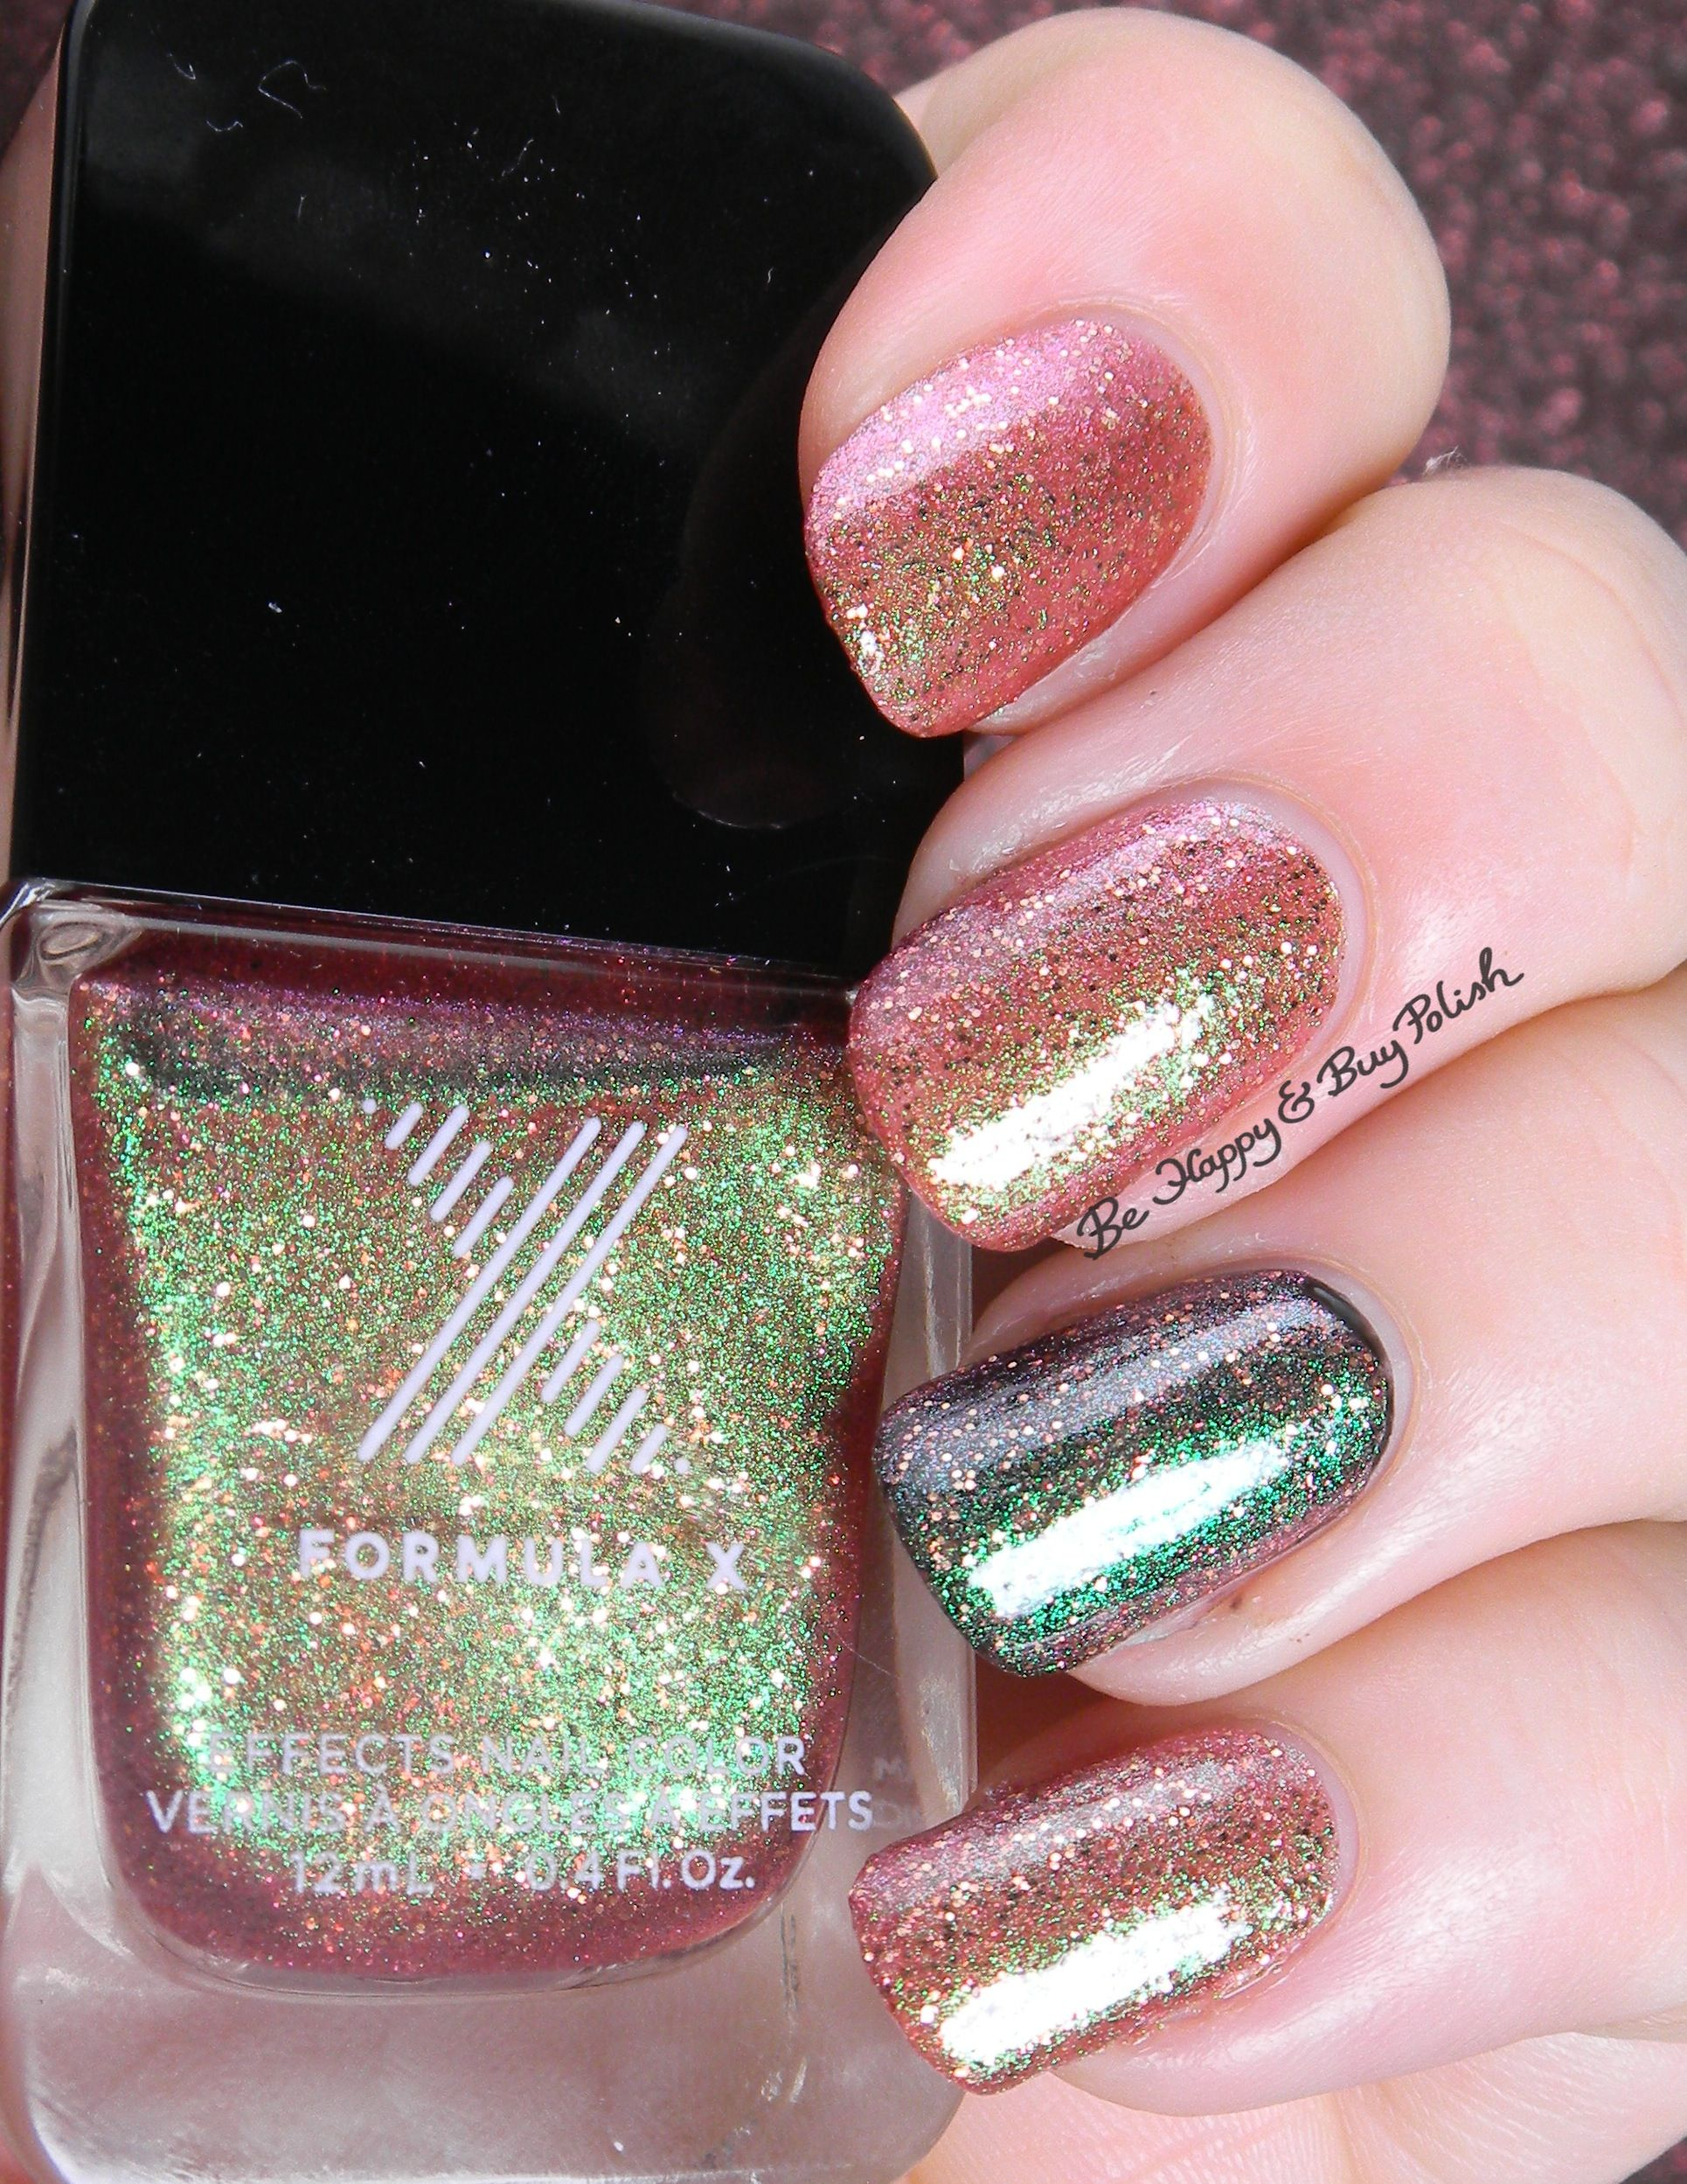 Sephora Formula X The Ombré Glitters swatches + review | Sephora ...